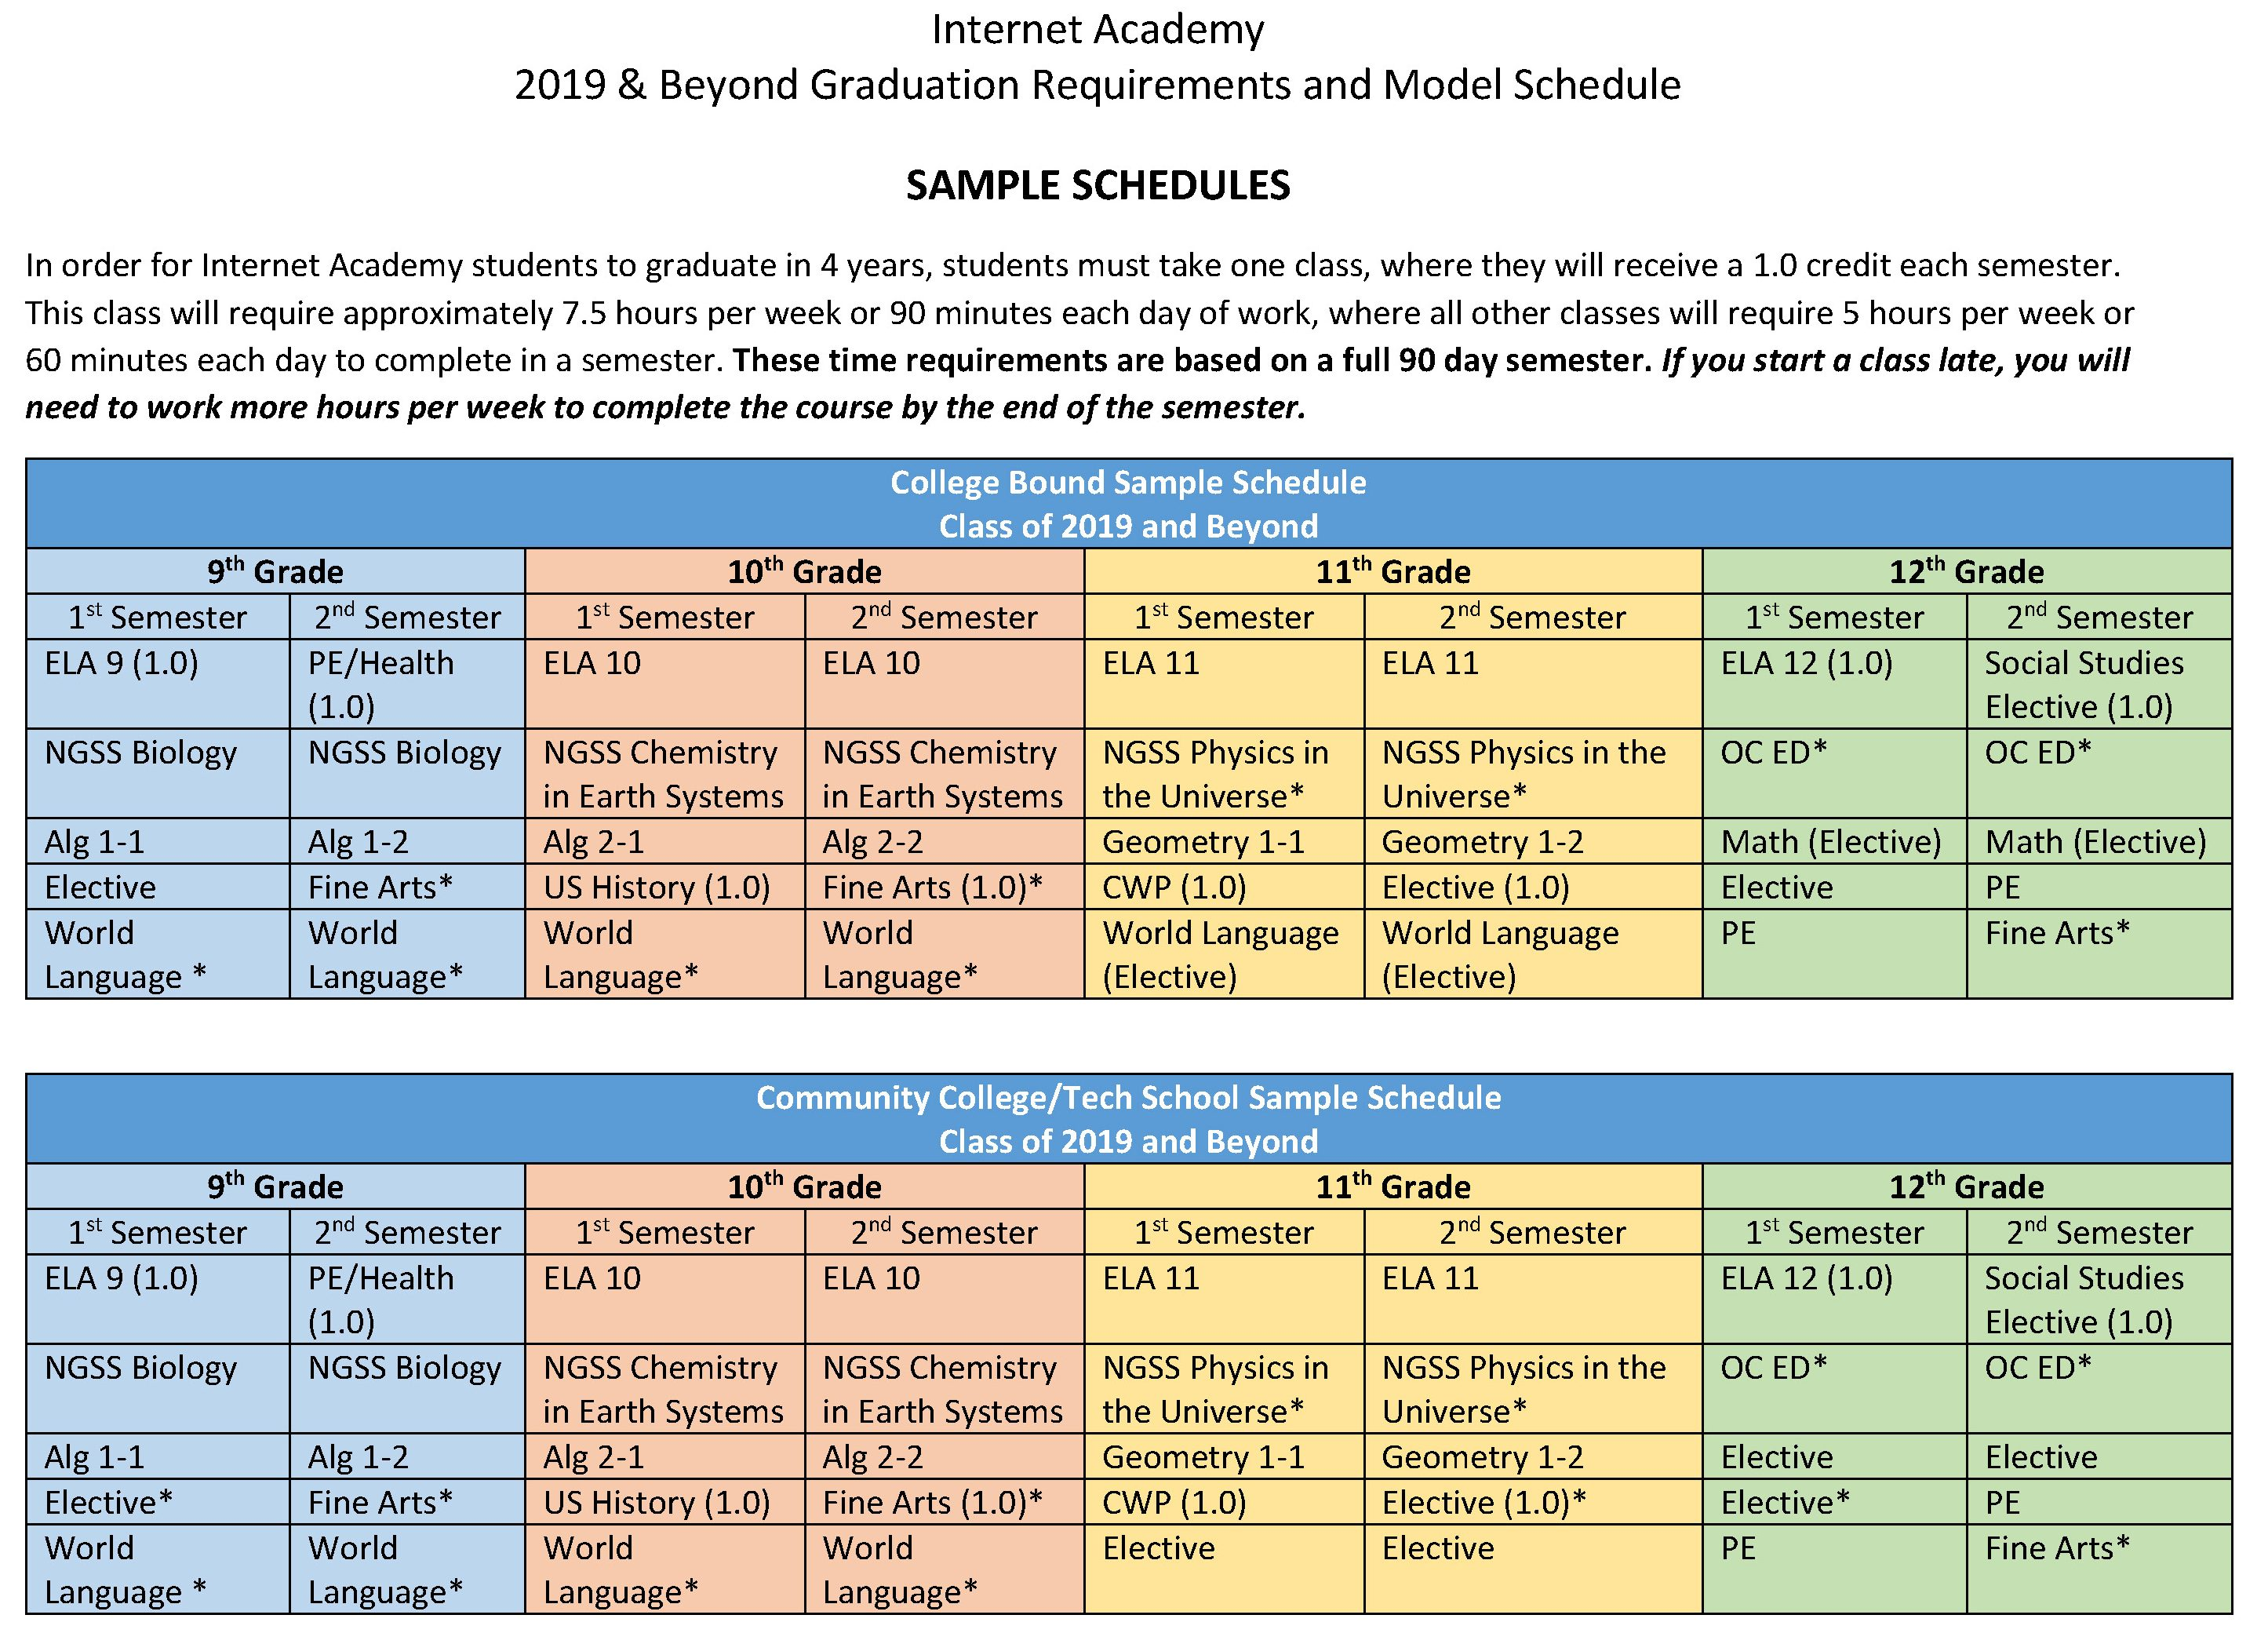 class of 2019 beyond sample schedule